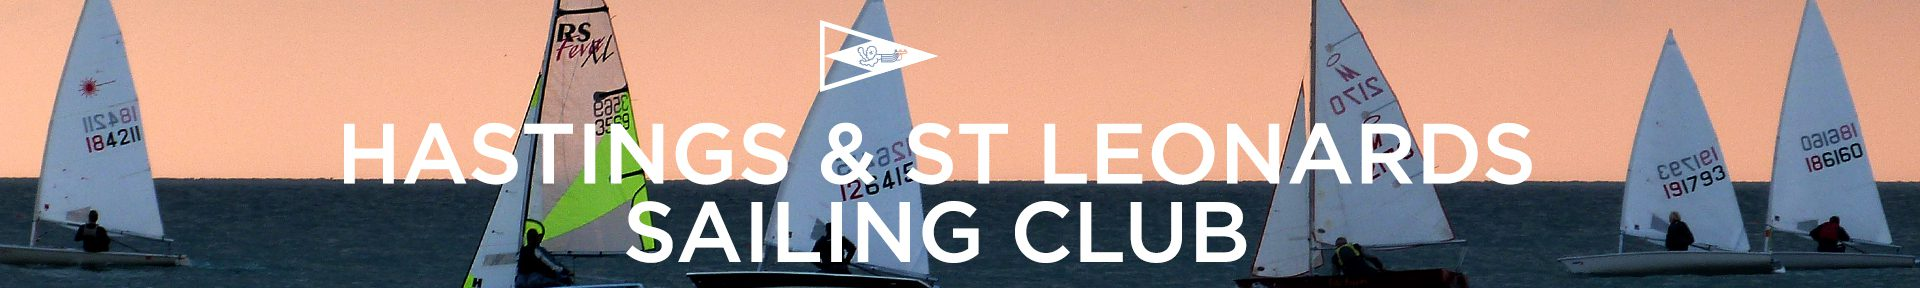 HASTINGS & ST LEONARDS SAILING CLUB